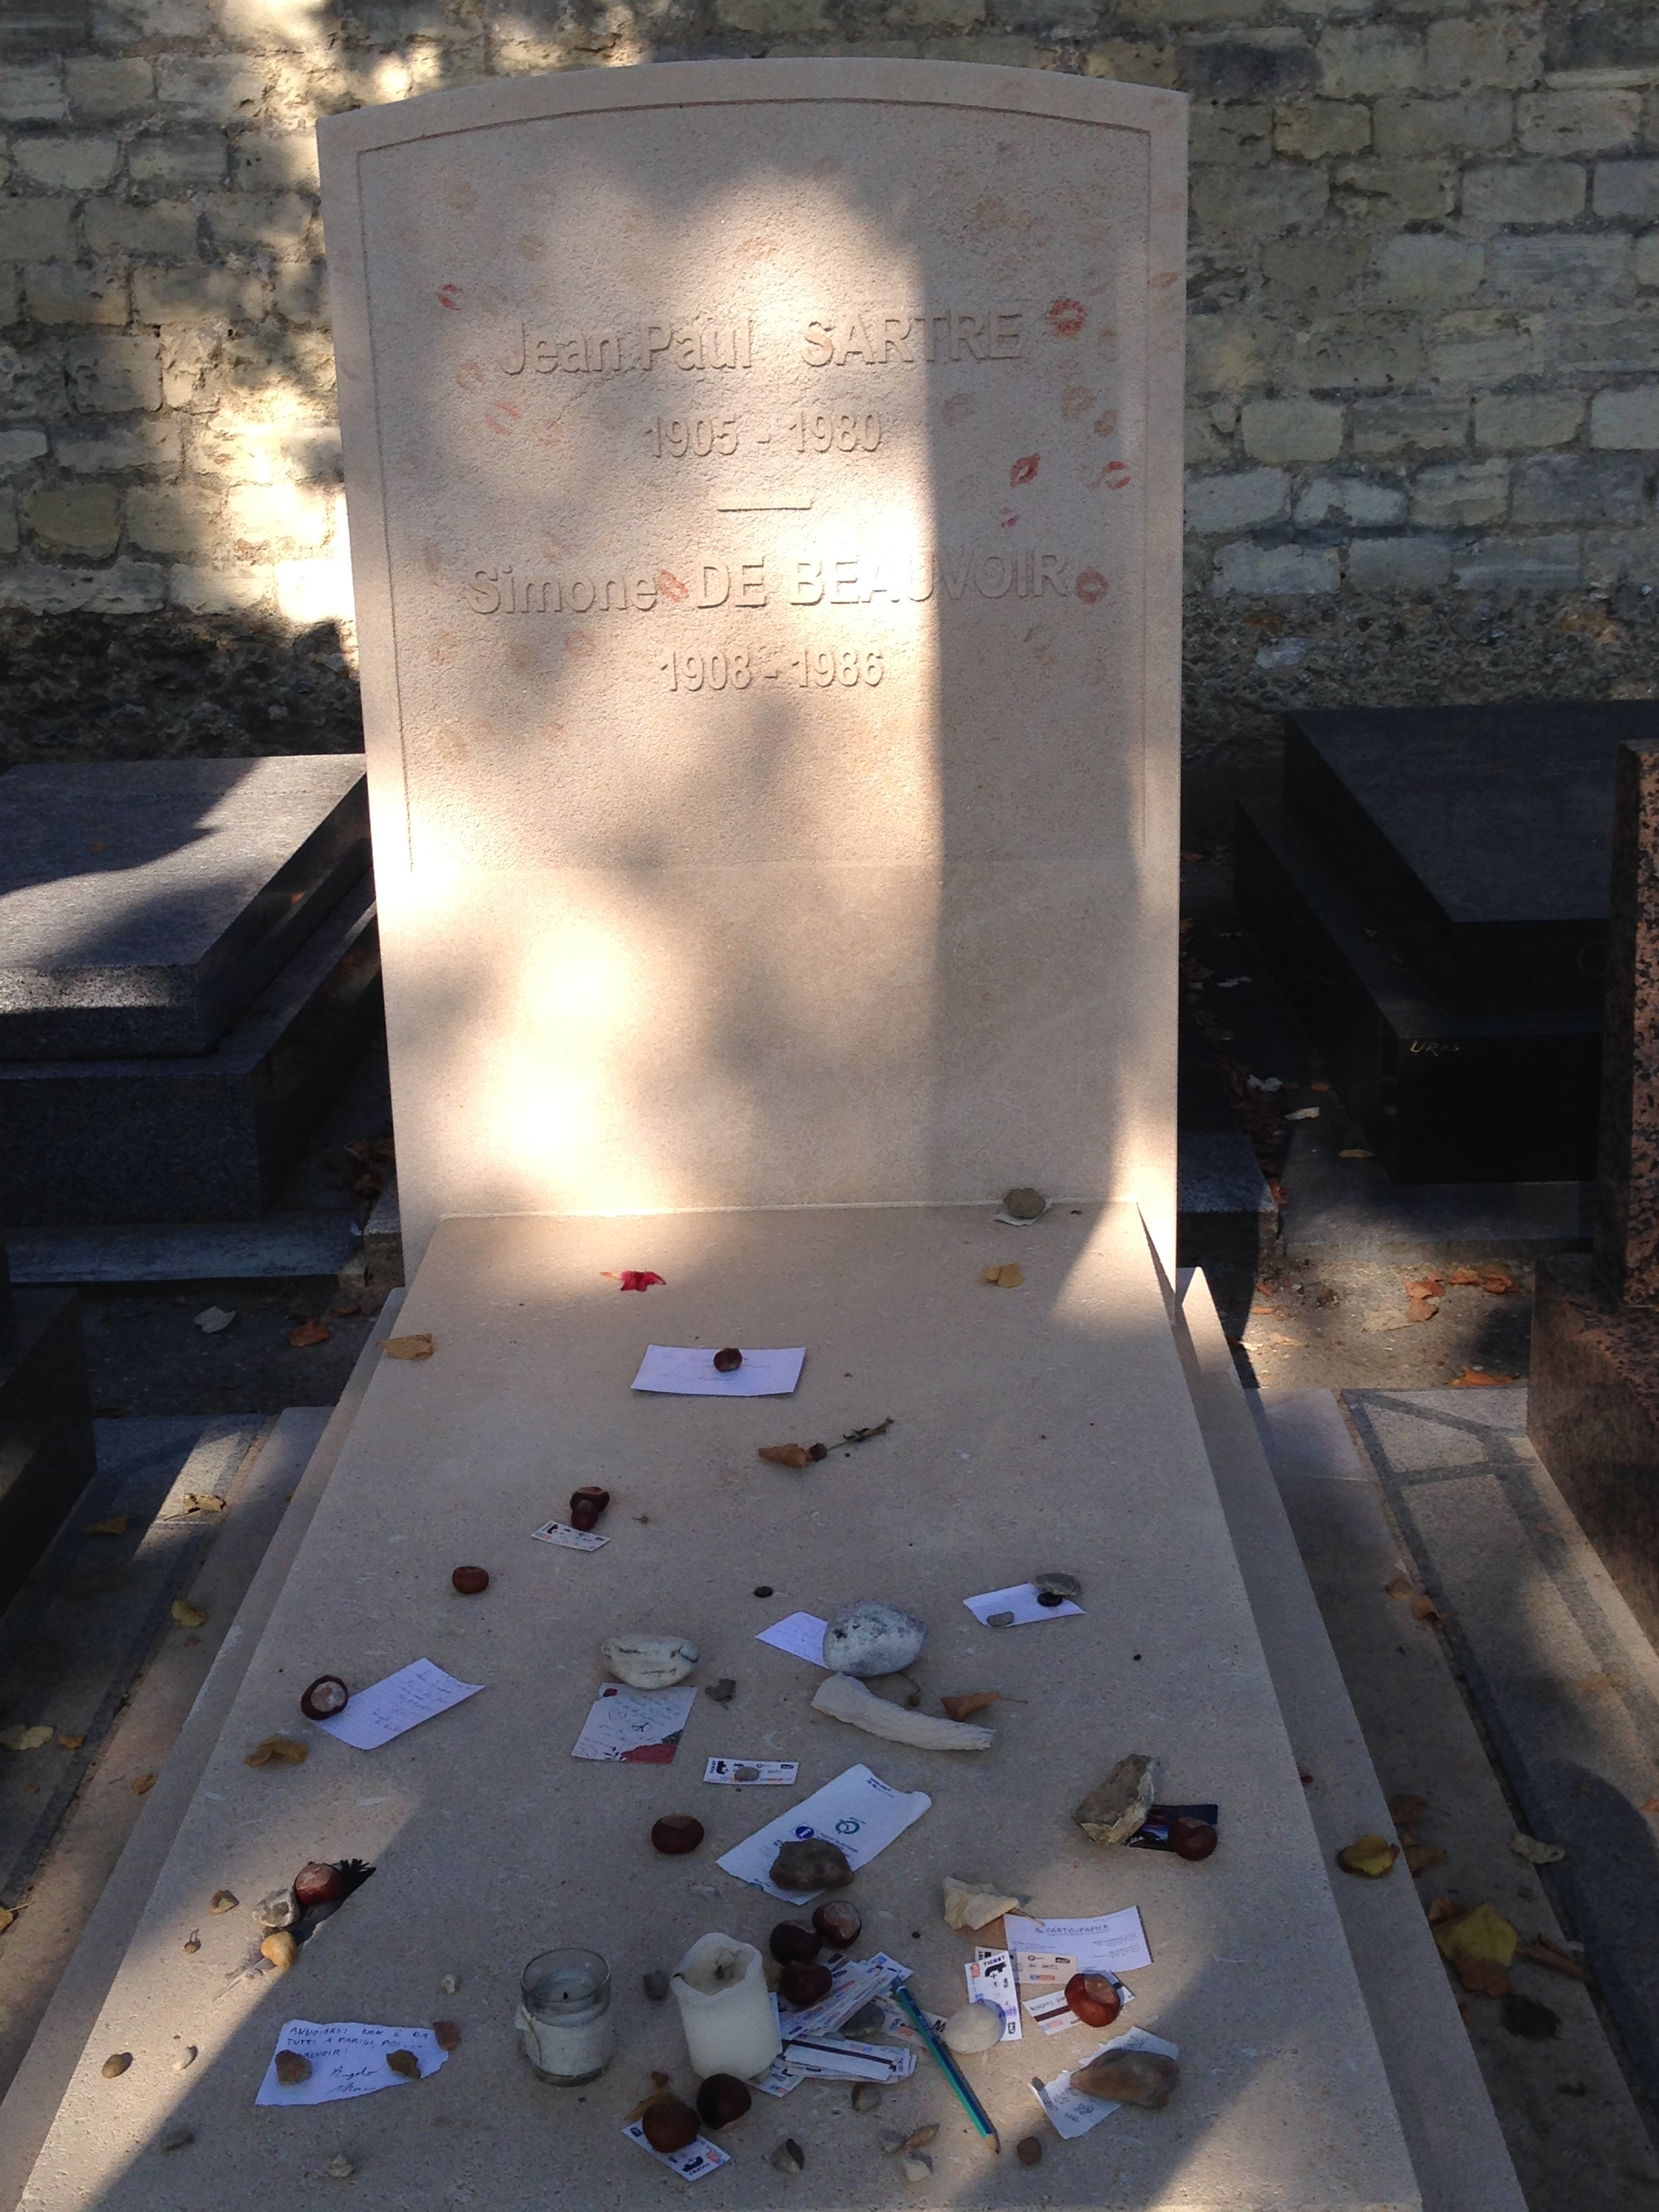 sartre lovers of philosophy sartre and beauvoir s grave in montparnasse cemetery